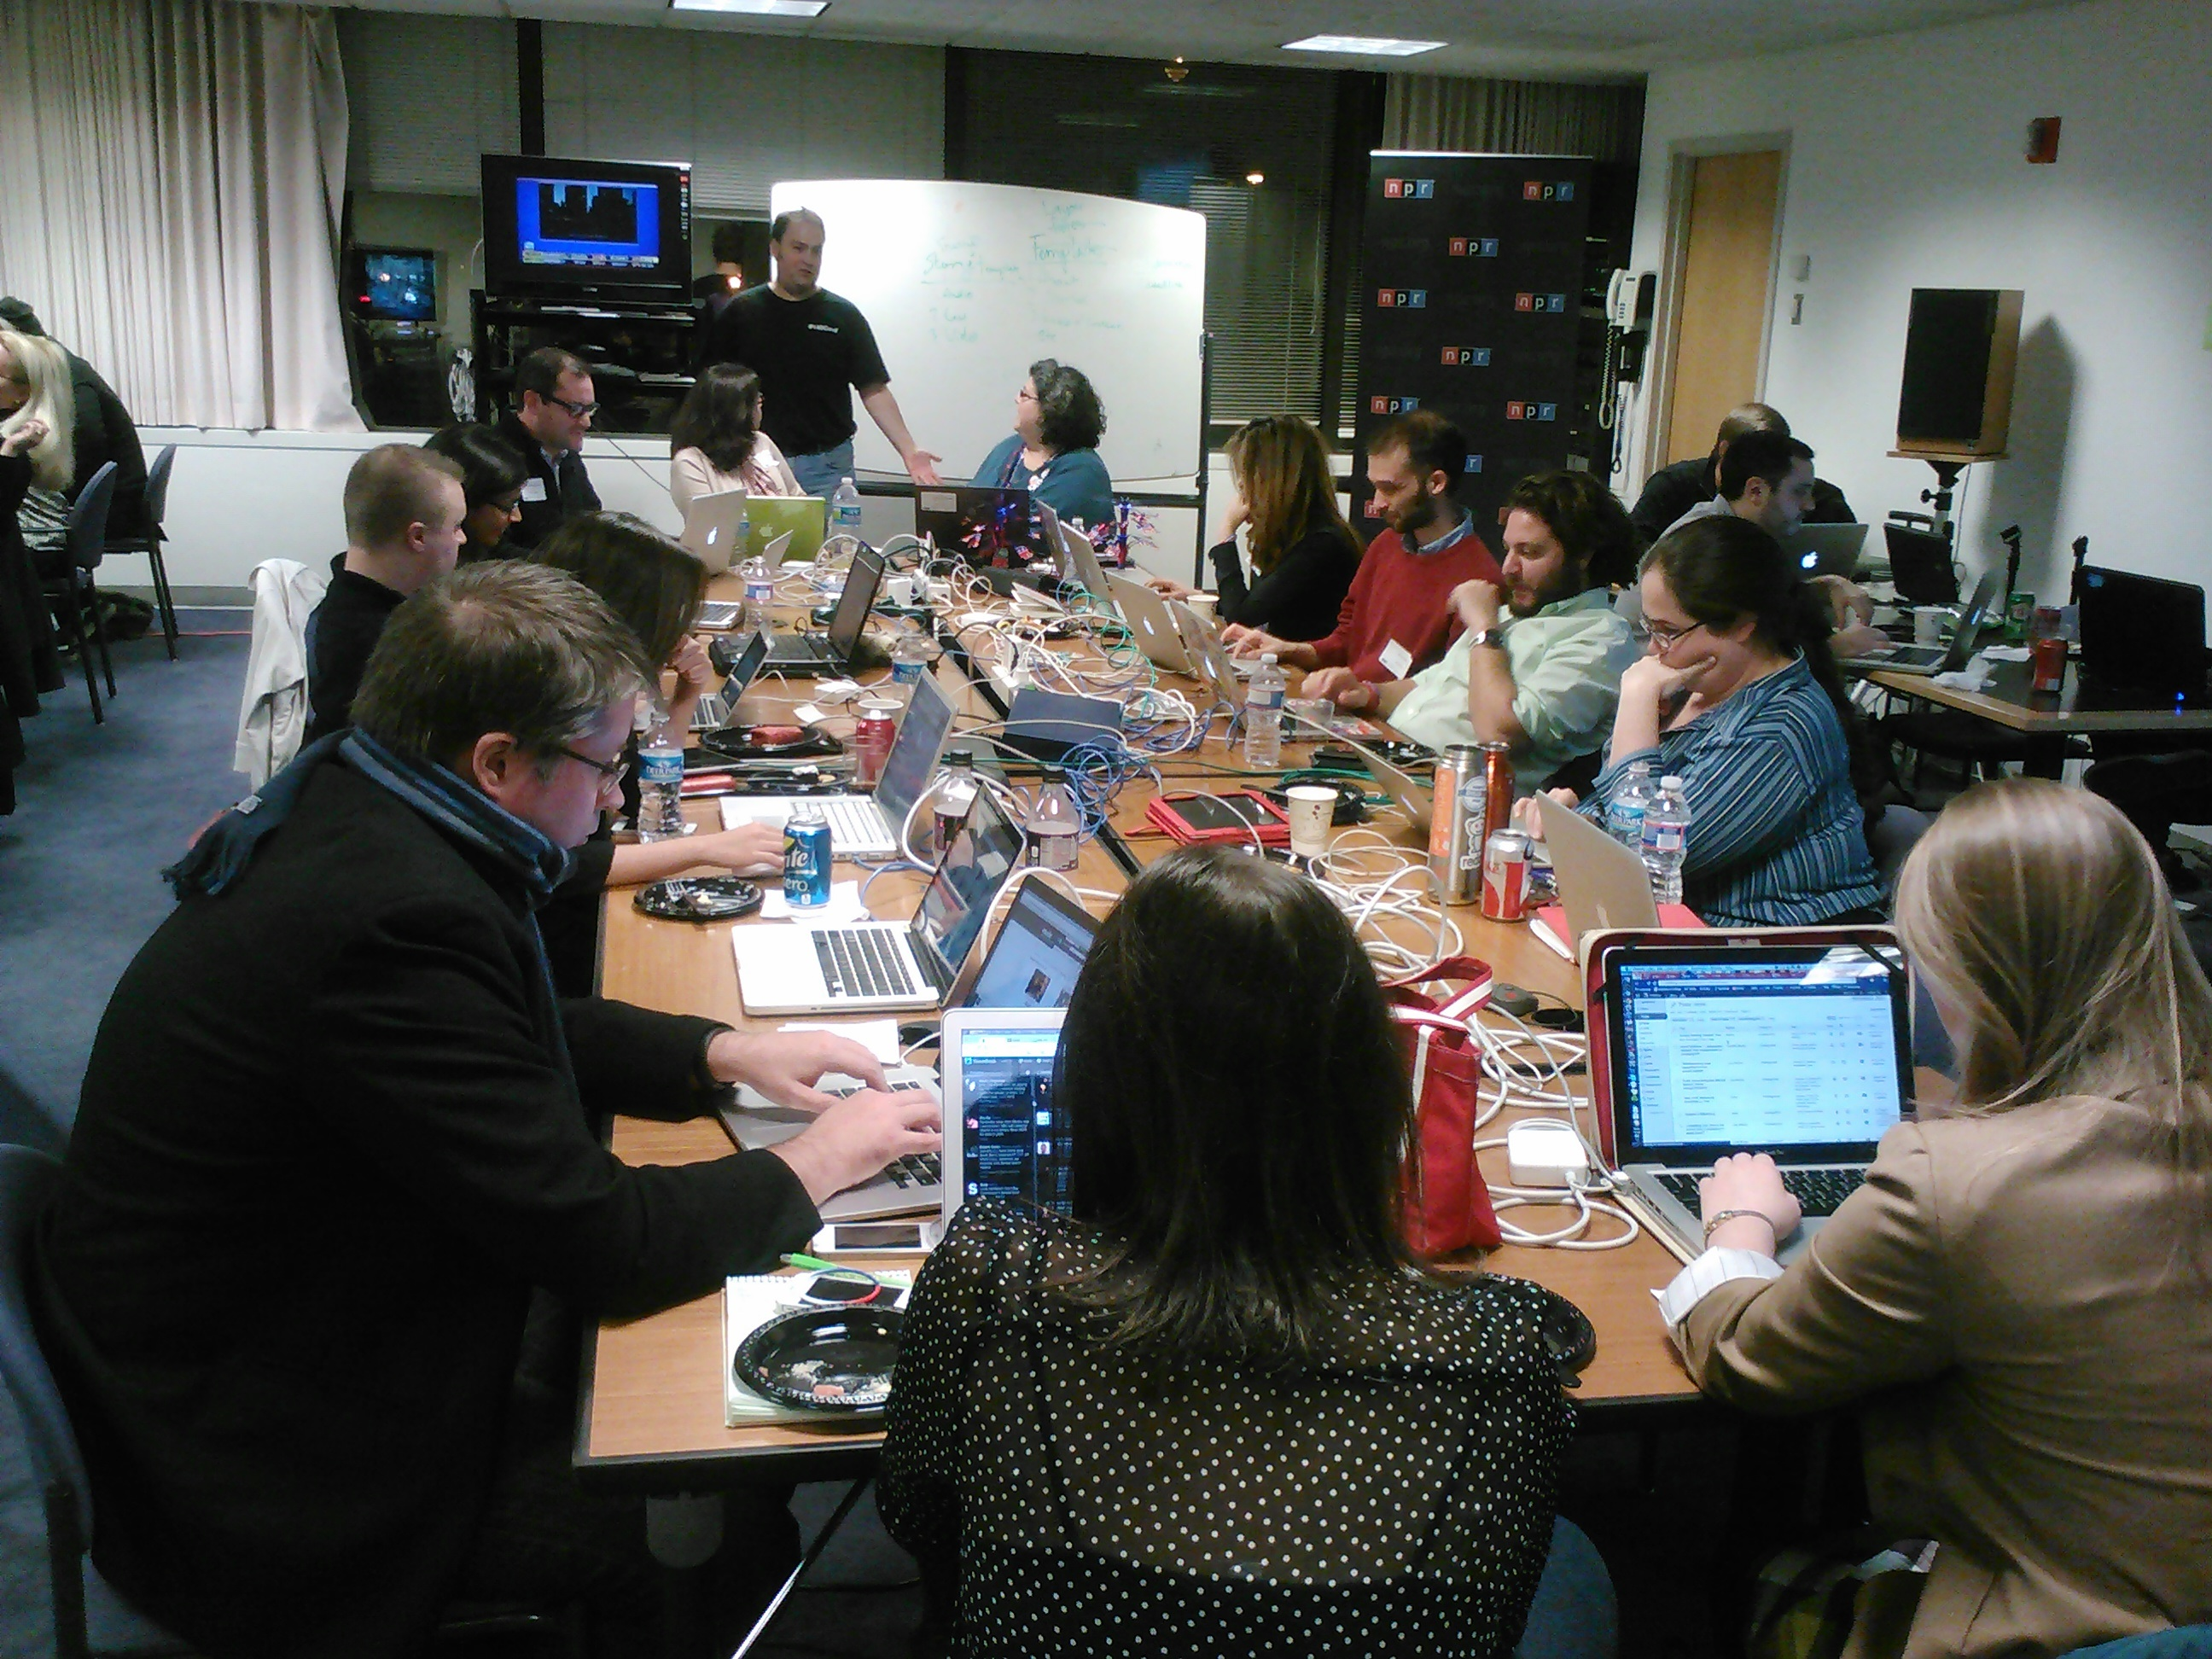 Inside NPR headquarters in Washington on election night. NPR senior strategist Andy Carvin stands in the back of the room. (Photo by Jolie Lee)